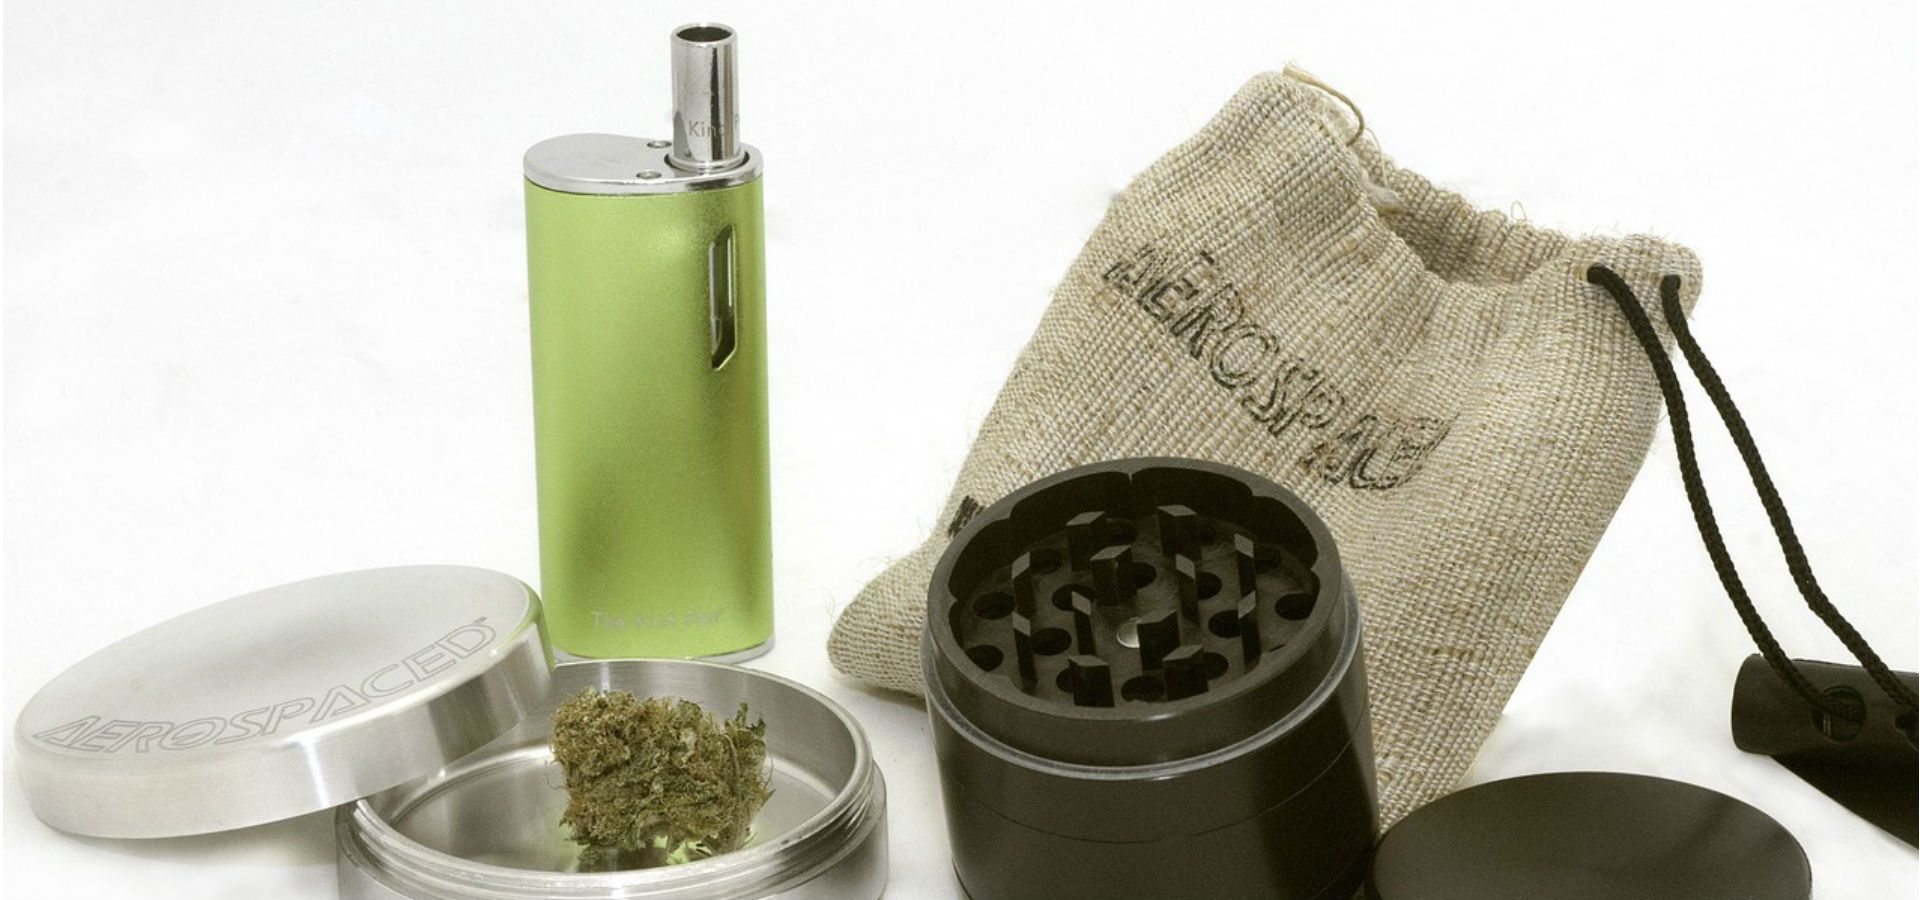 Cannabis Accessory Compliance Checklist: Guide for Retailers